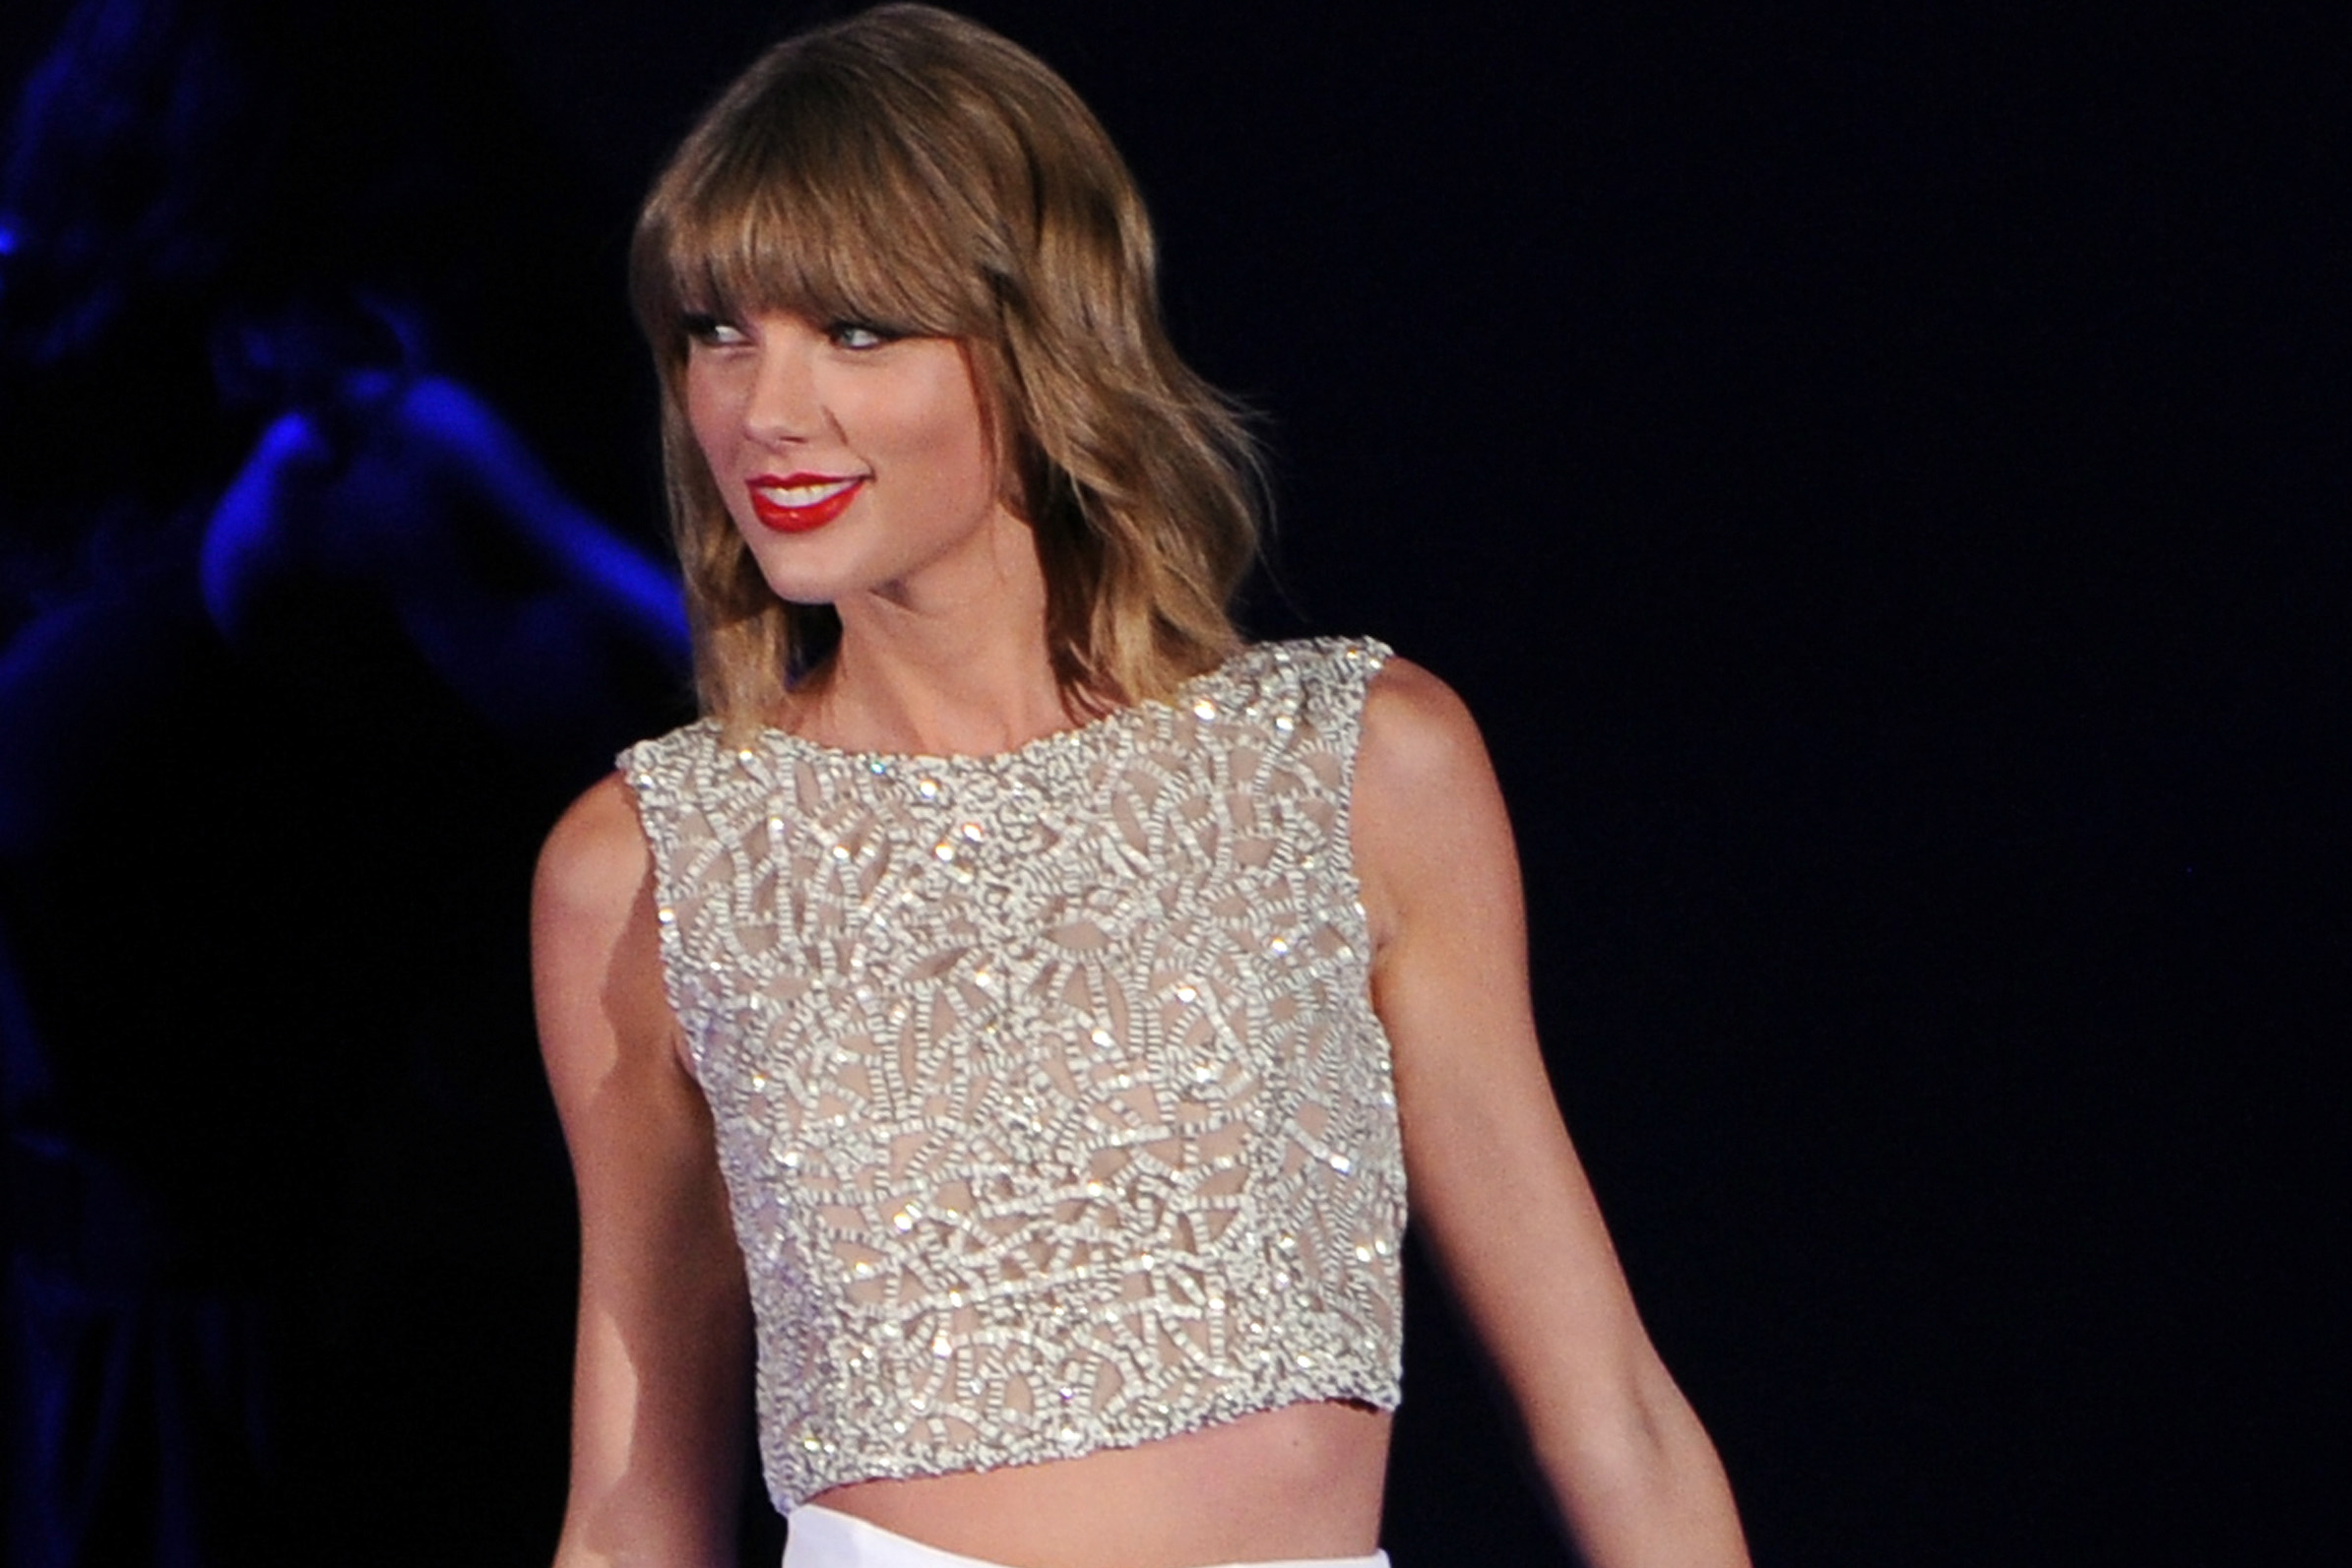 Taylor Swift donated $15,000 to the firefighter who saved his family